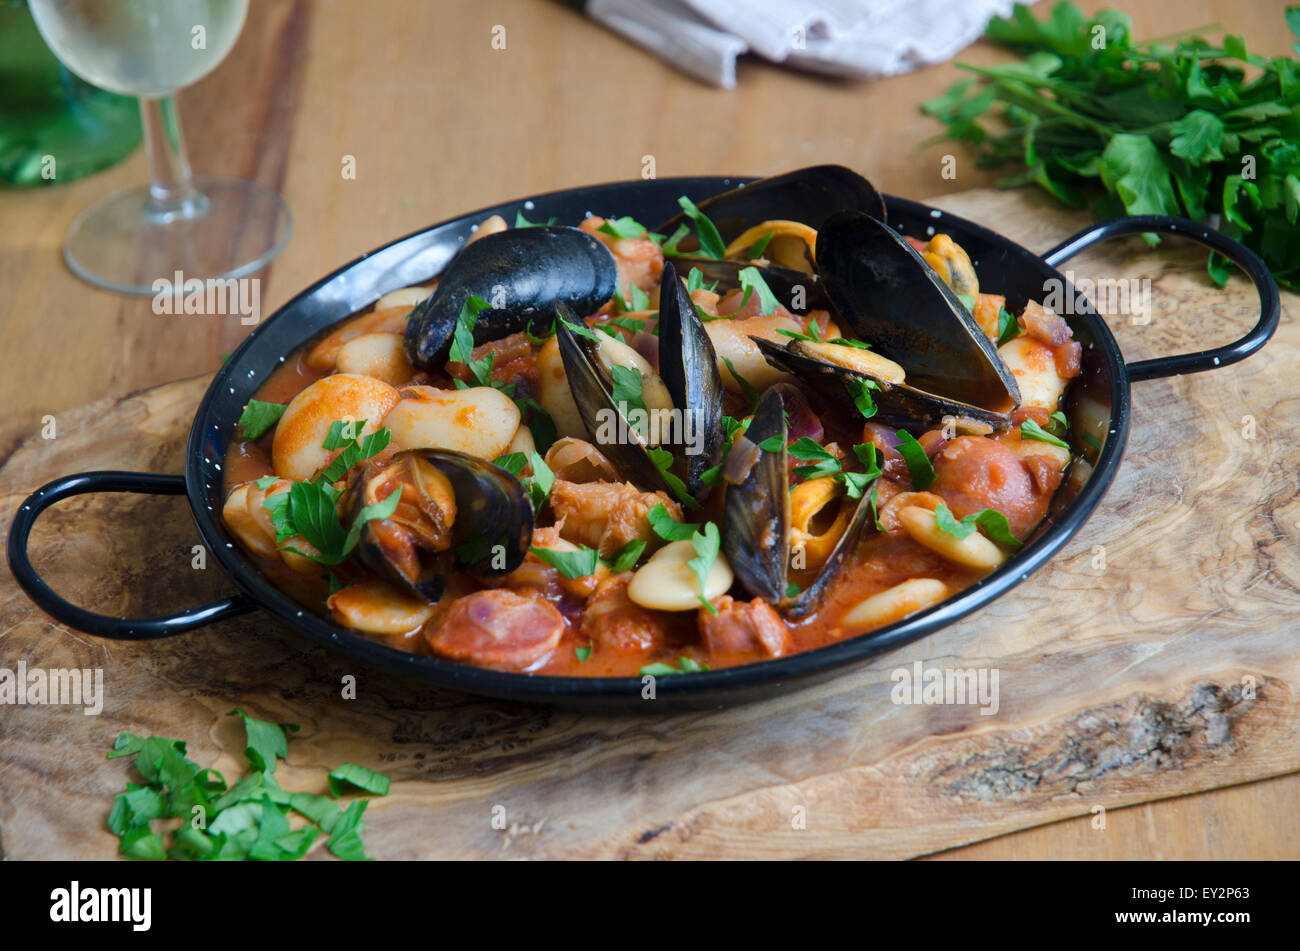 Ragoût de haricots et de moules Photo Stock